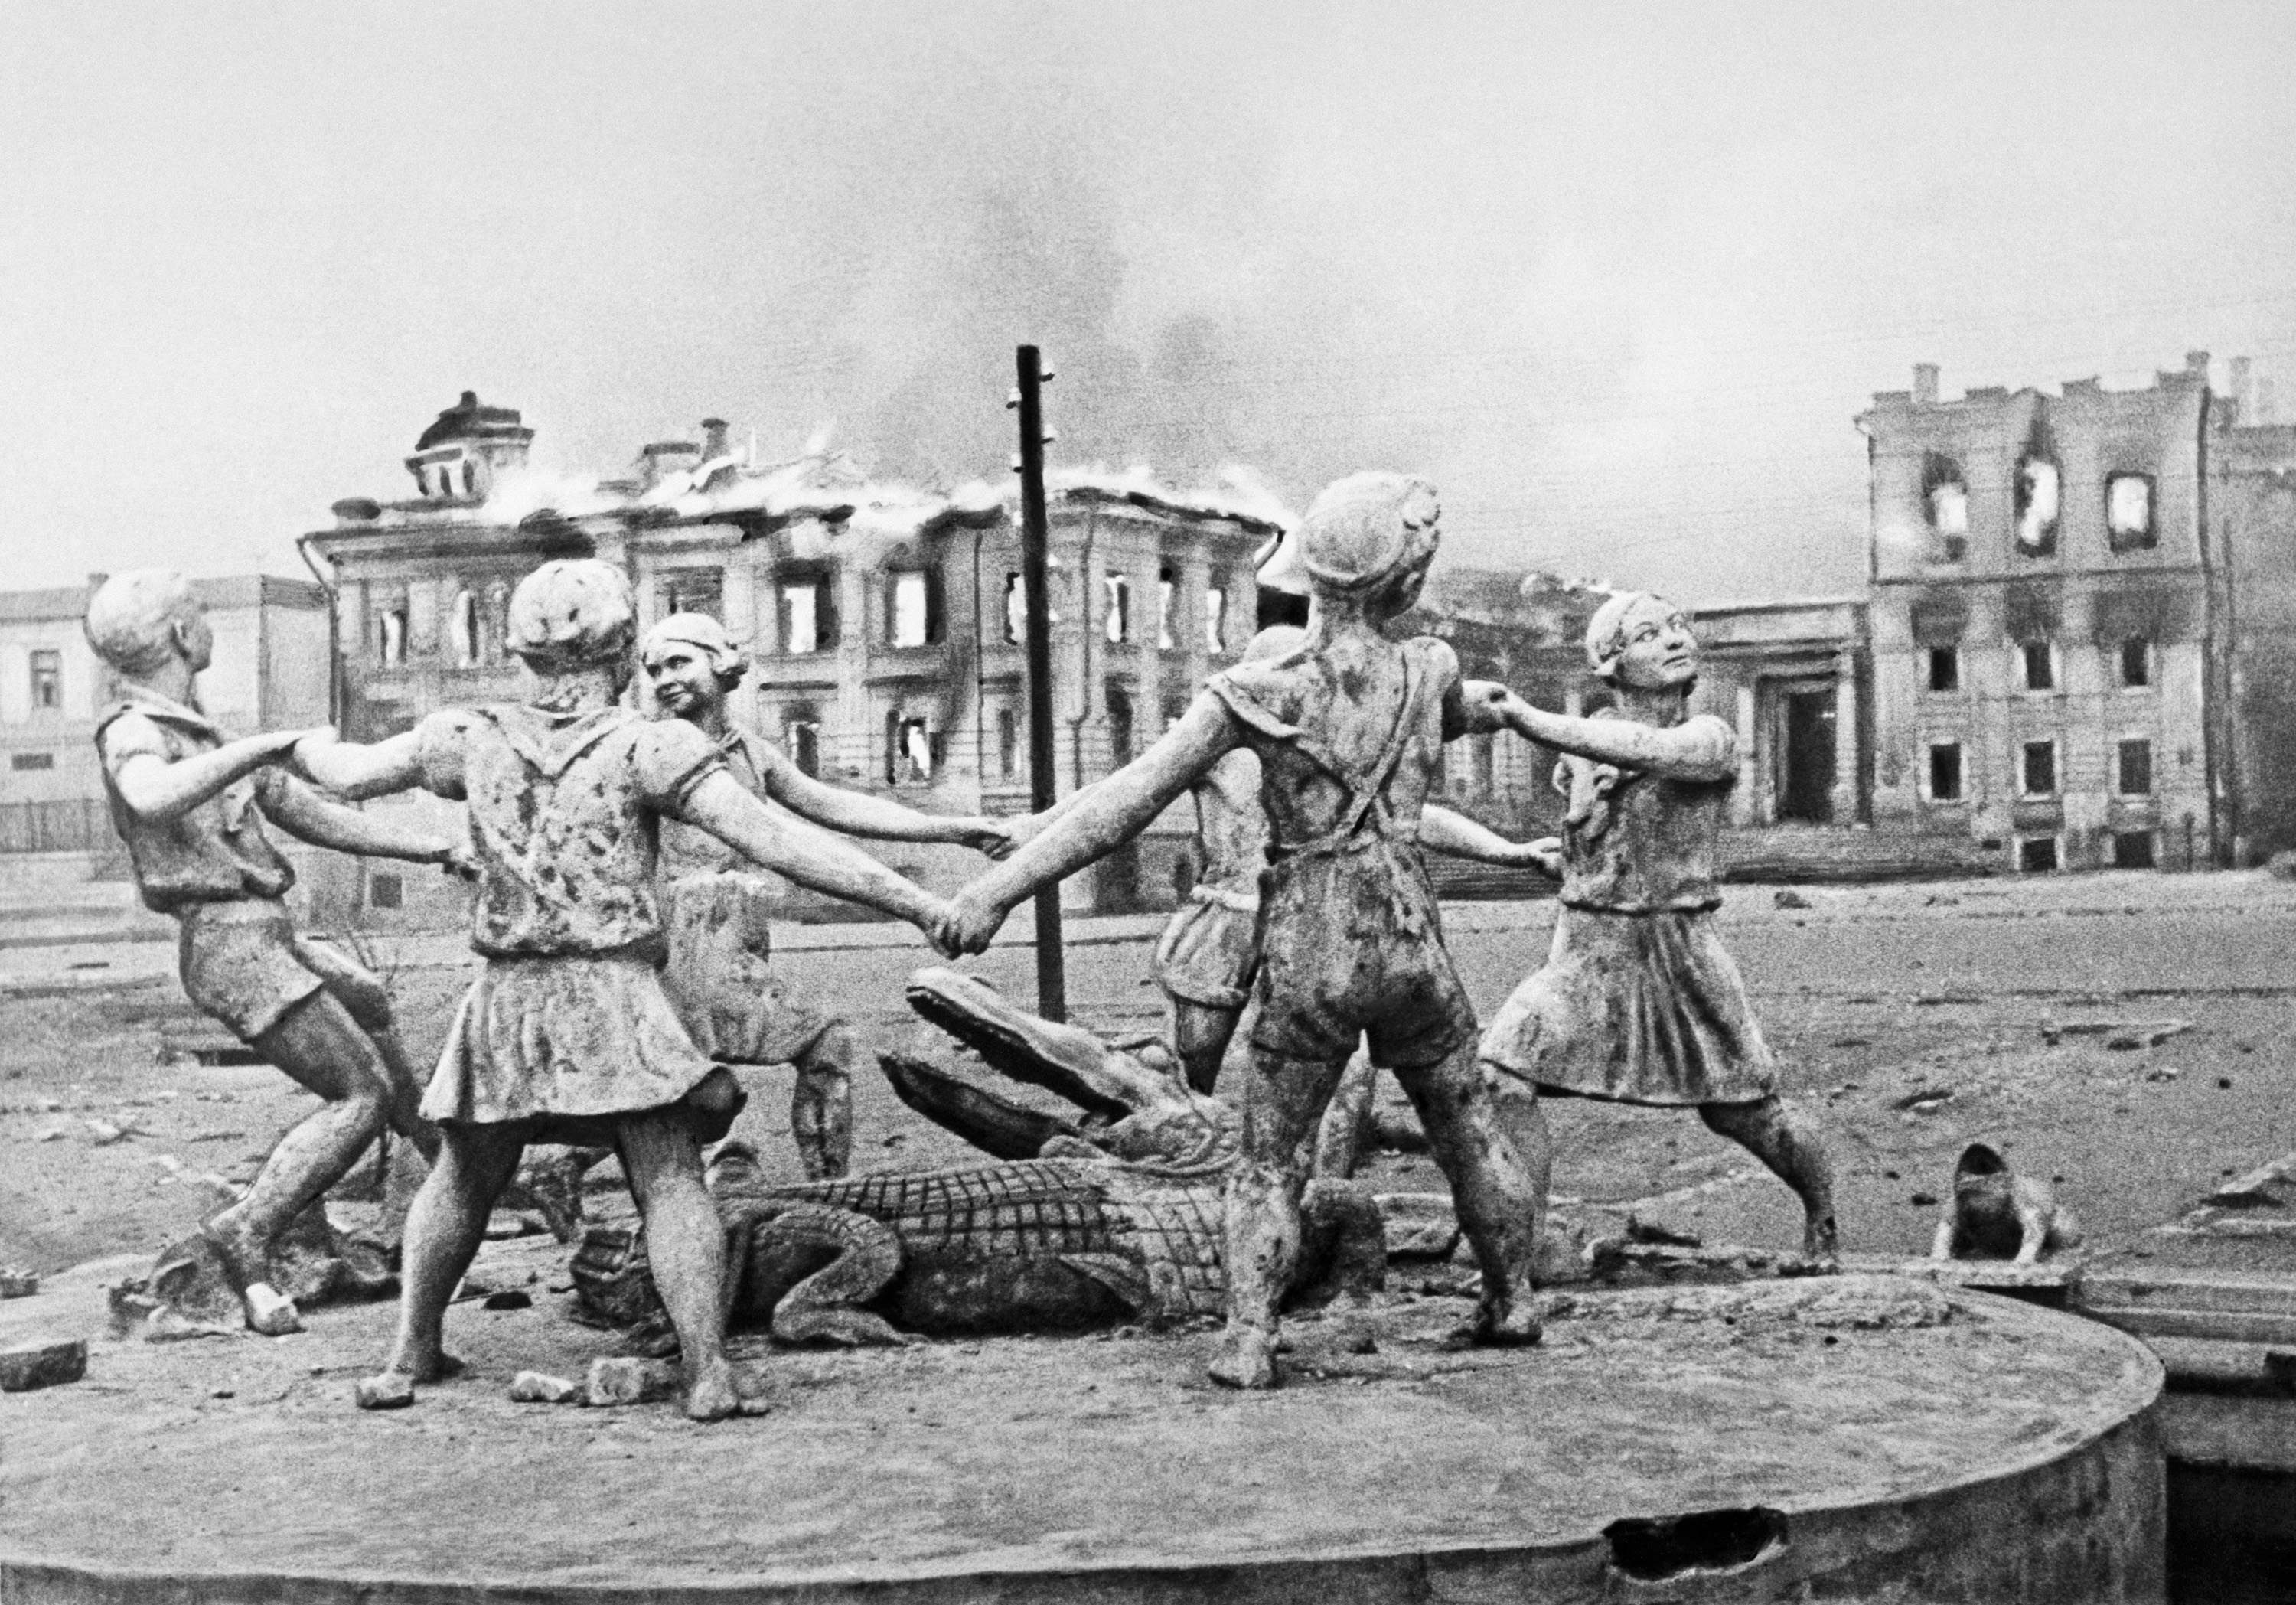 Battle of Stalingrad, 1942